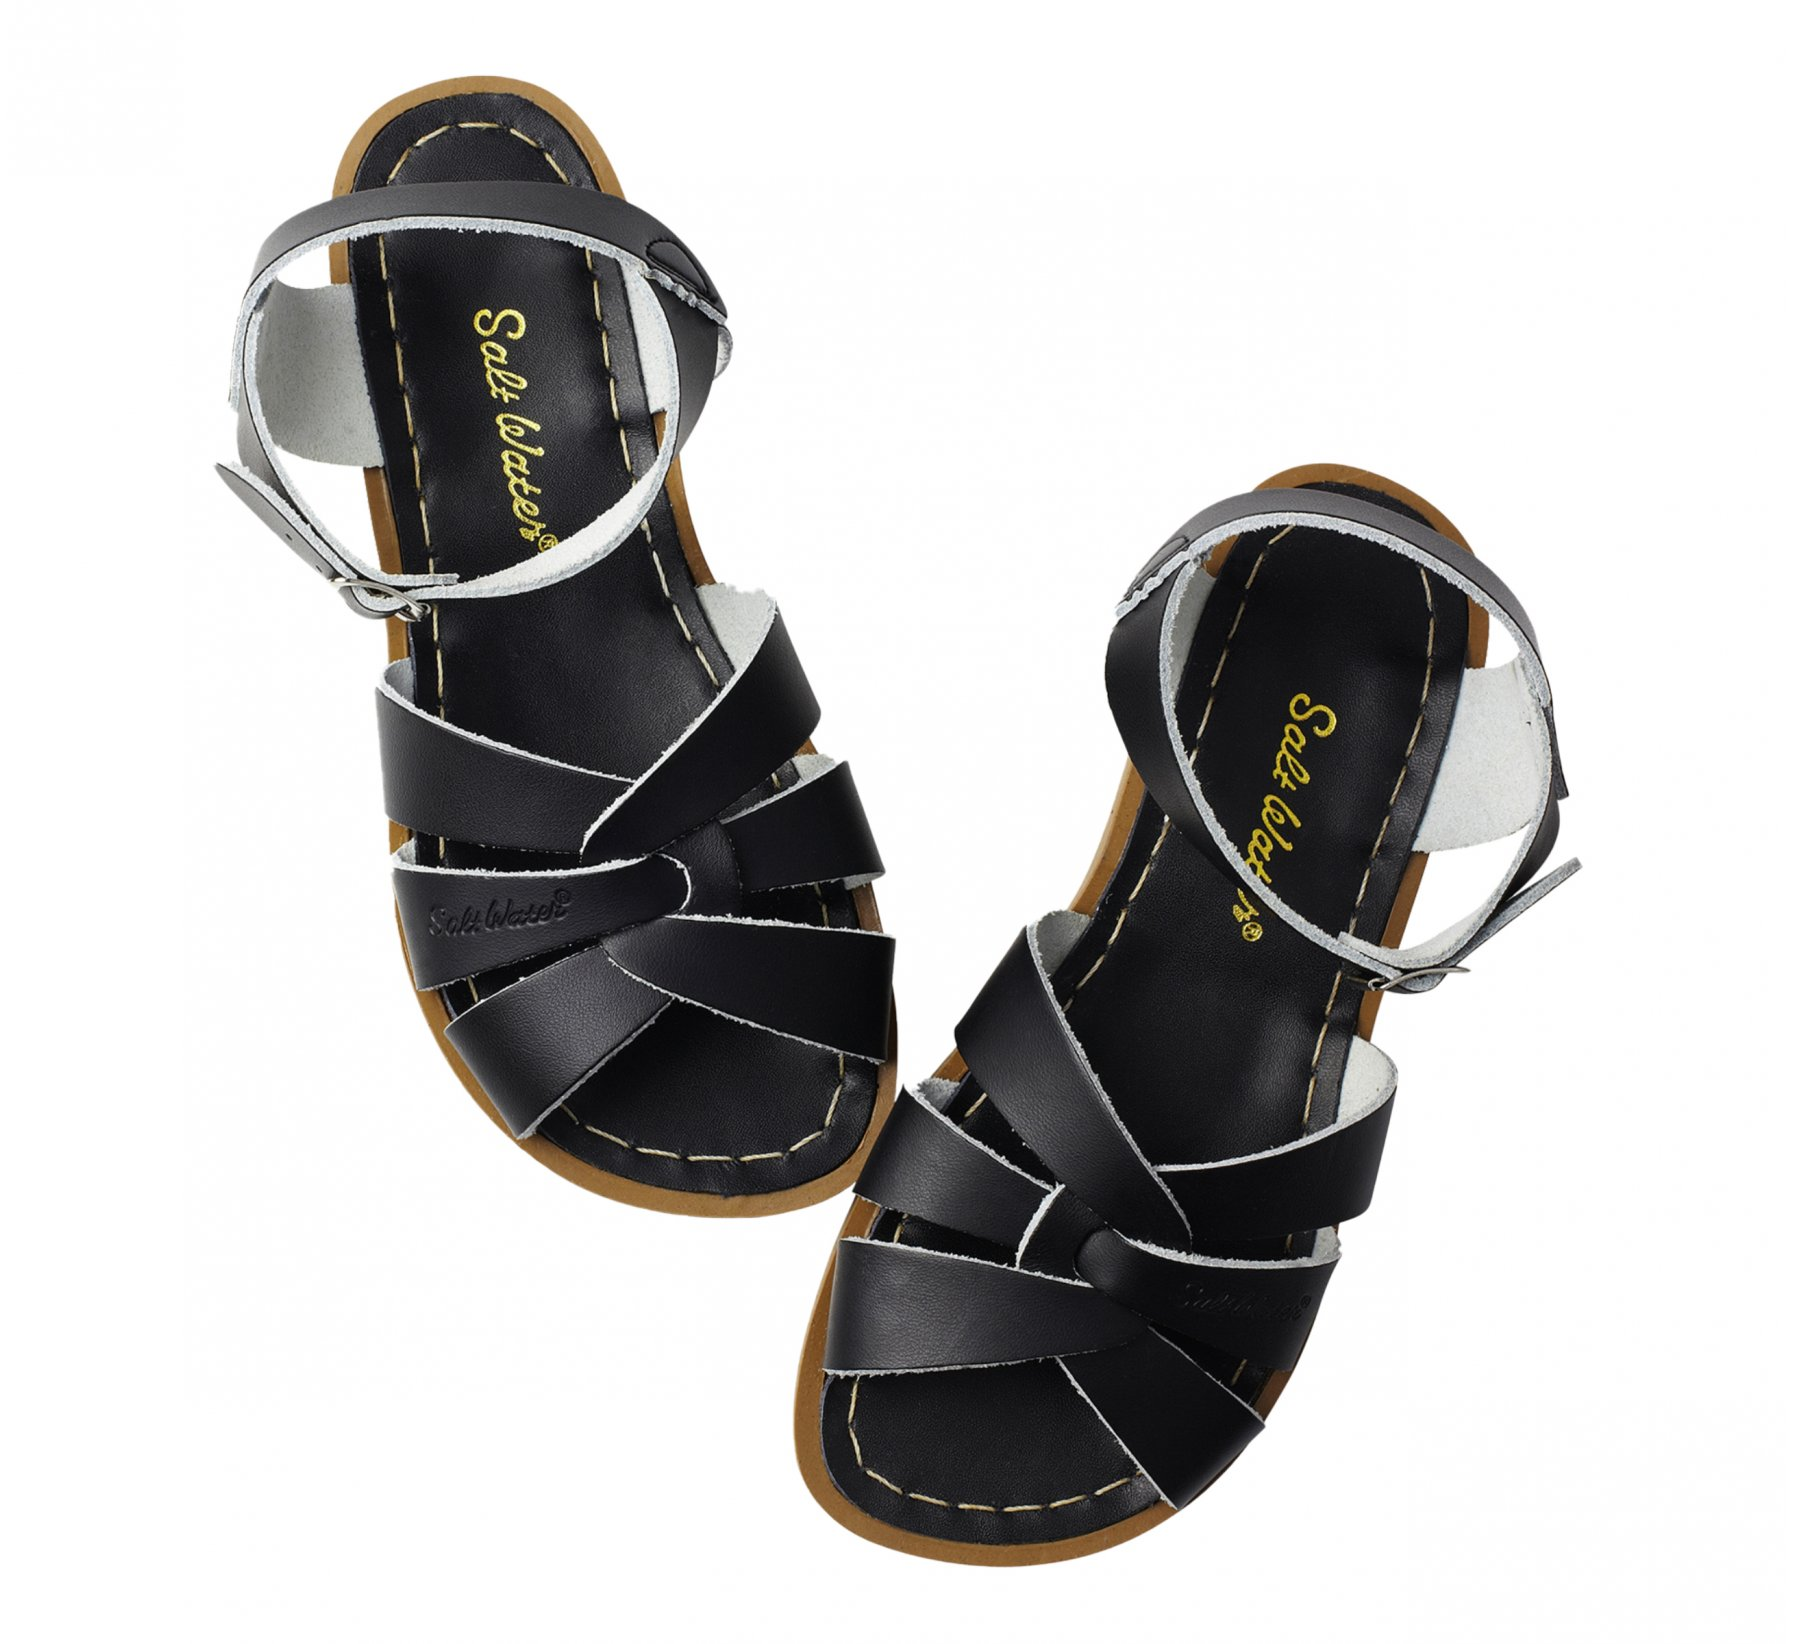 Original Noir - Salt Water Sandals